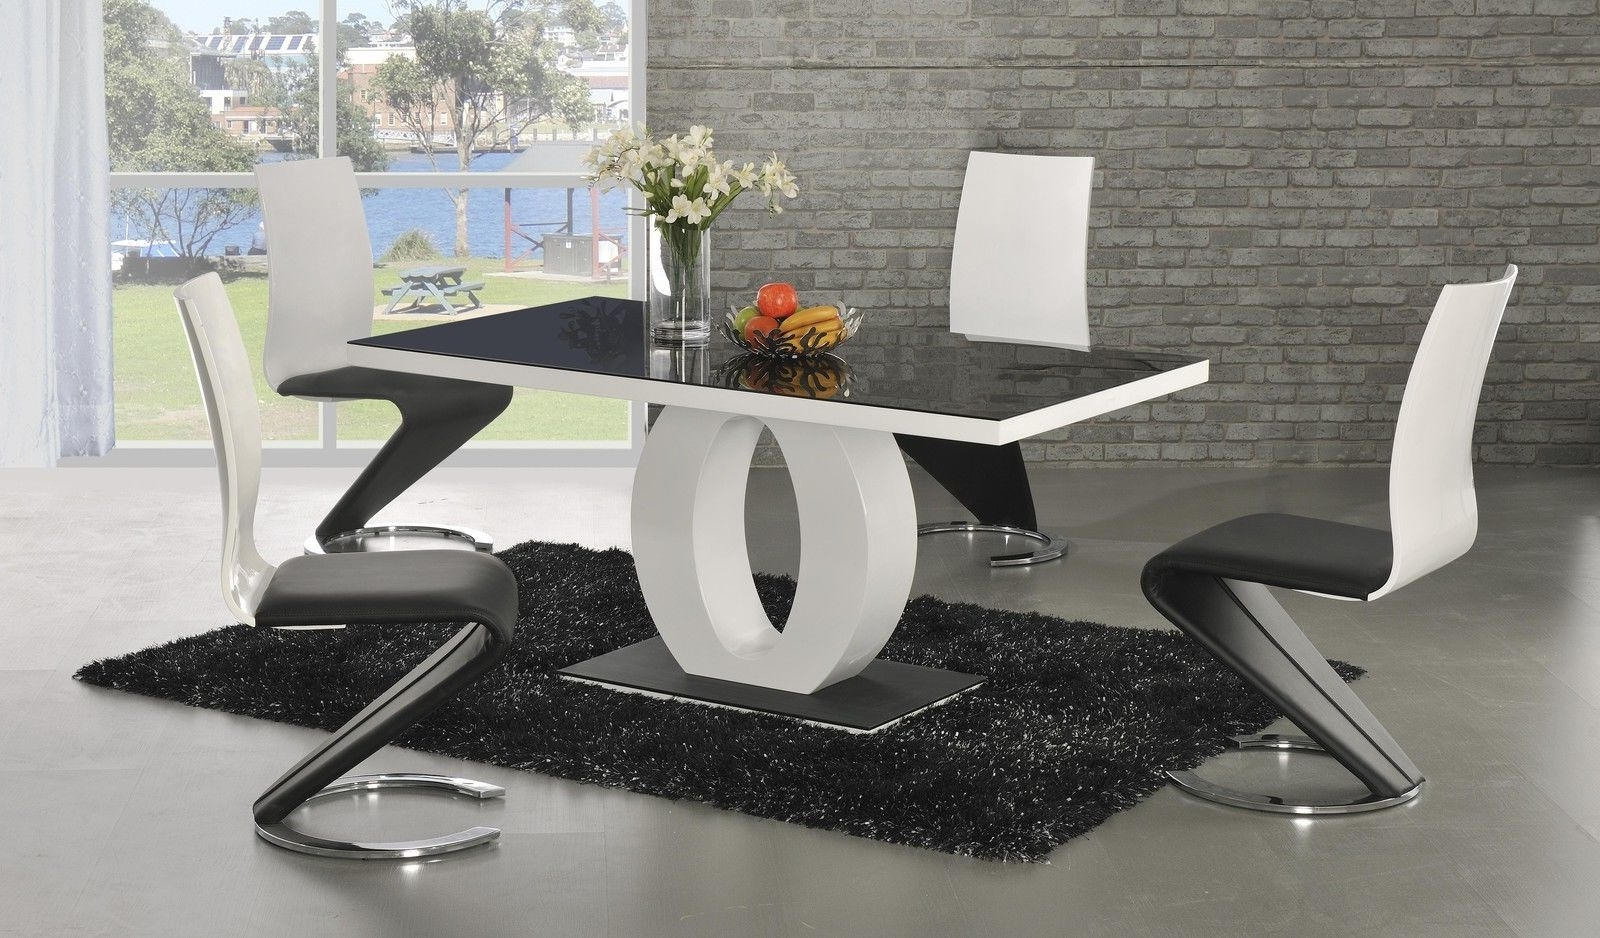 Fashionable Ga Angel Black Glass White Gloss 160 Cm Designer Dining Set 4 6 Z For White High Gloss Dining Tables And Chairs (View 4 of 25)